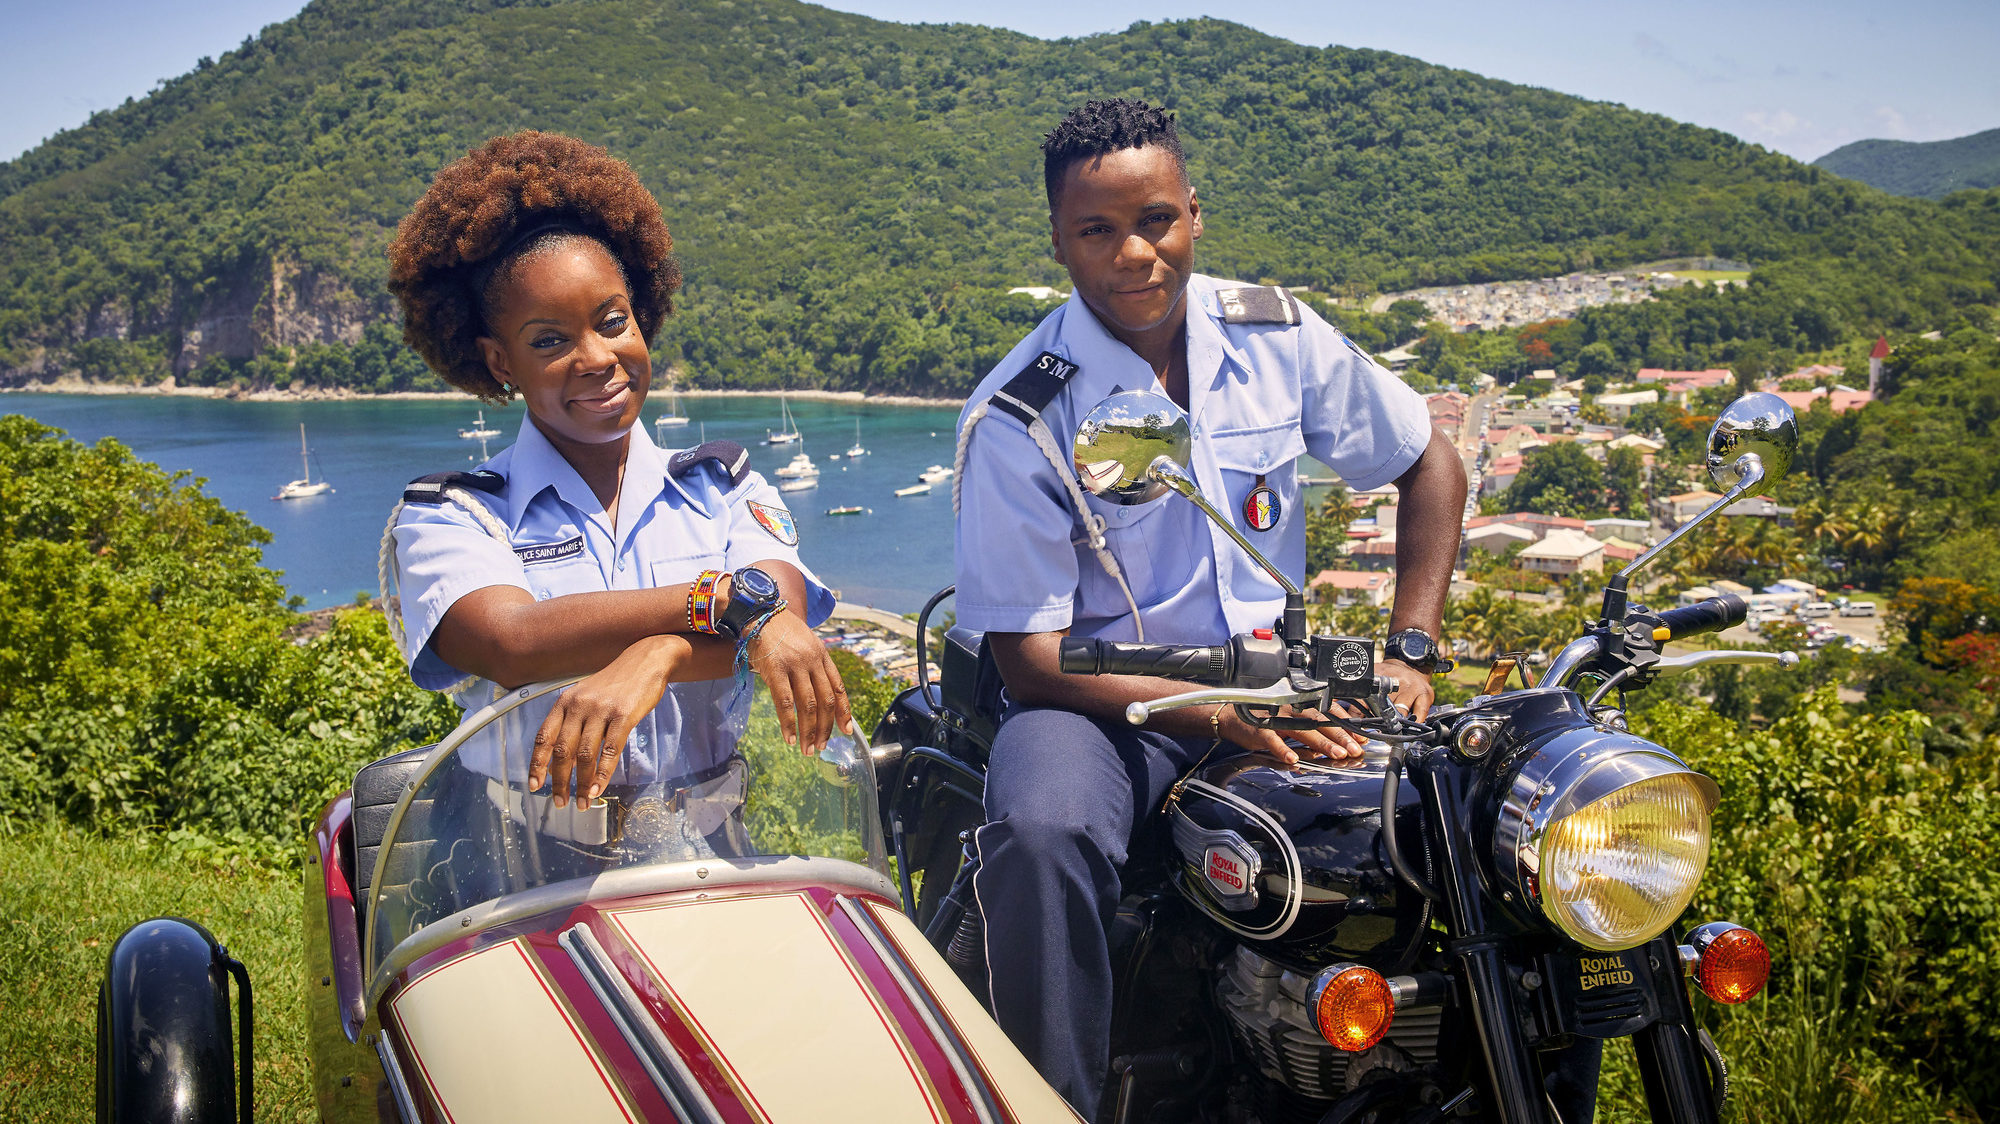 Death in Paradise season 9 release date